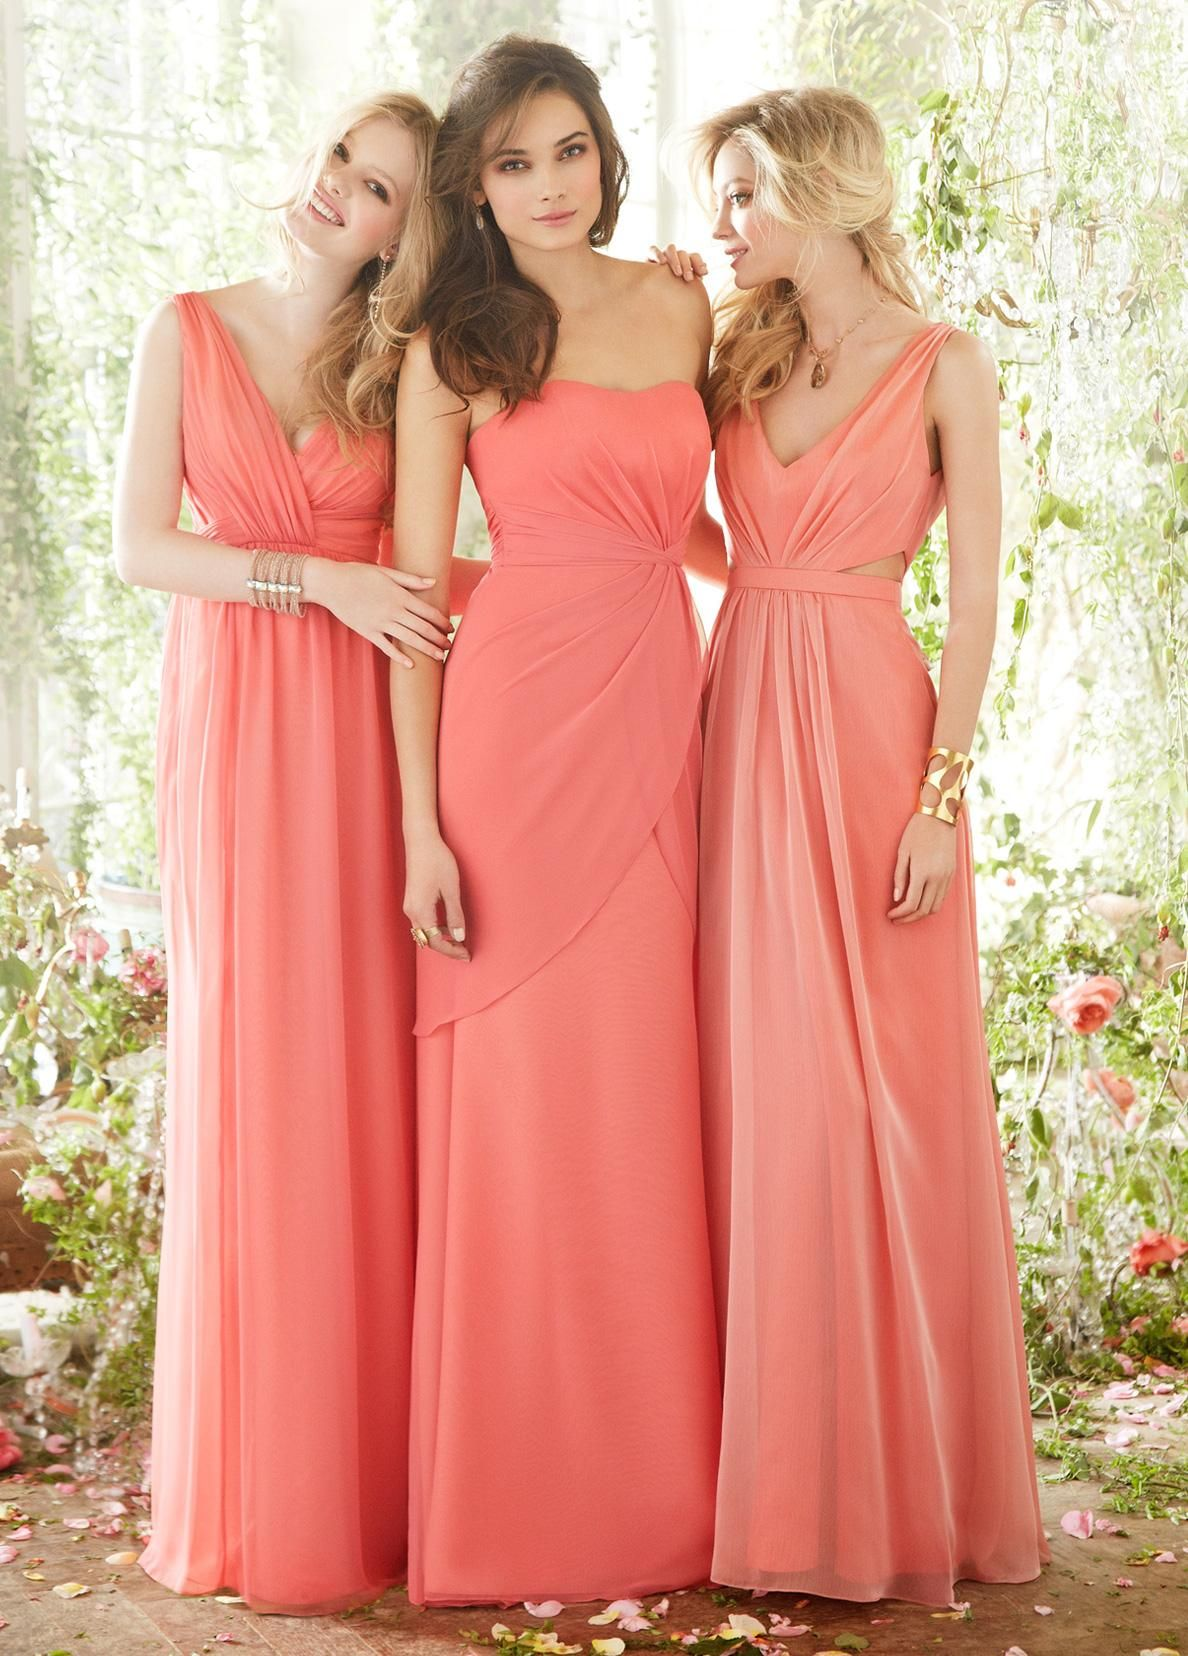 Coral colored bridesmaid dresses elegant long wedding party dress coral colored bridesmaid dresses elegant long wedding party dress v neck backless chiffon imported evening prom ombrellifo Images